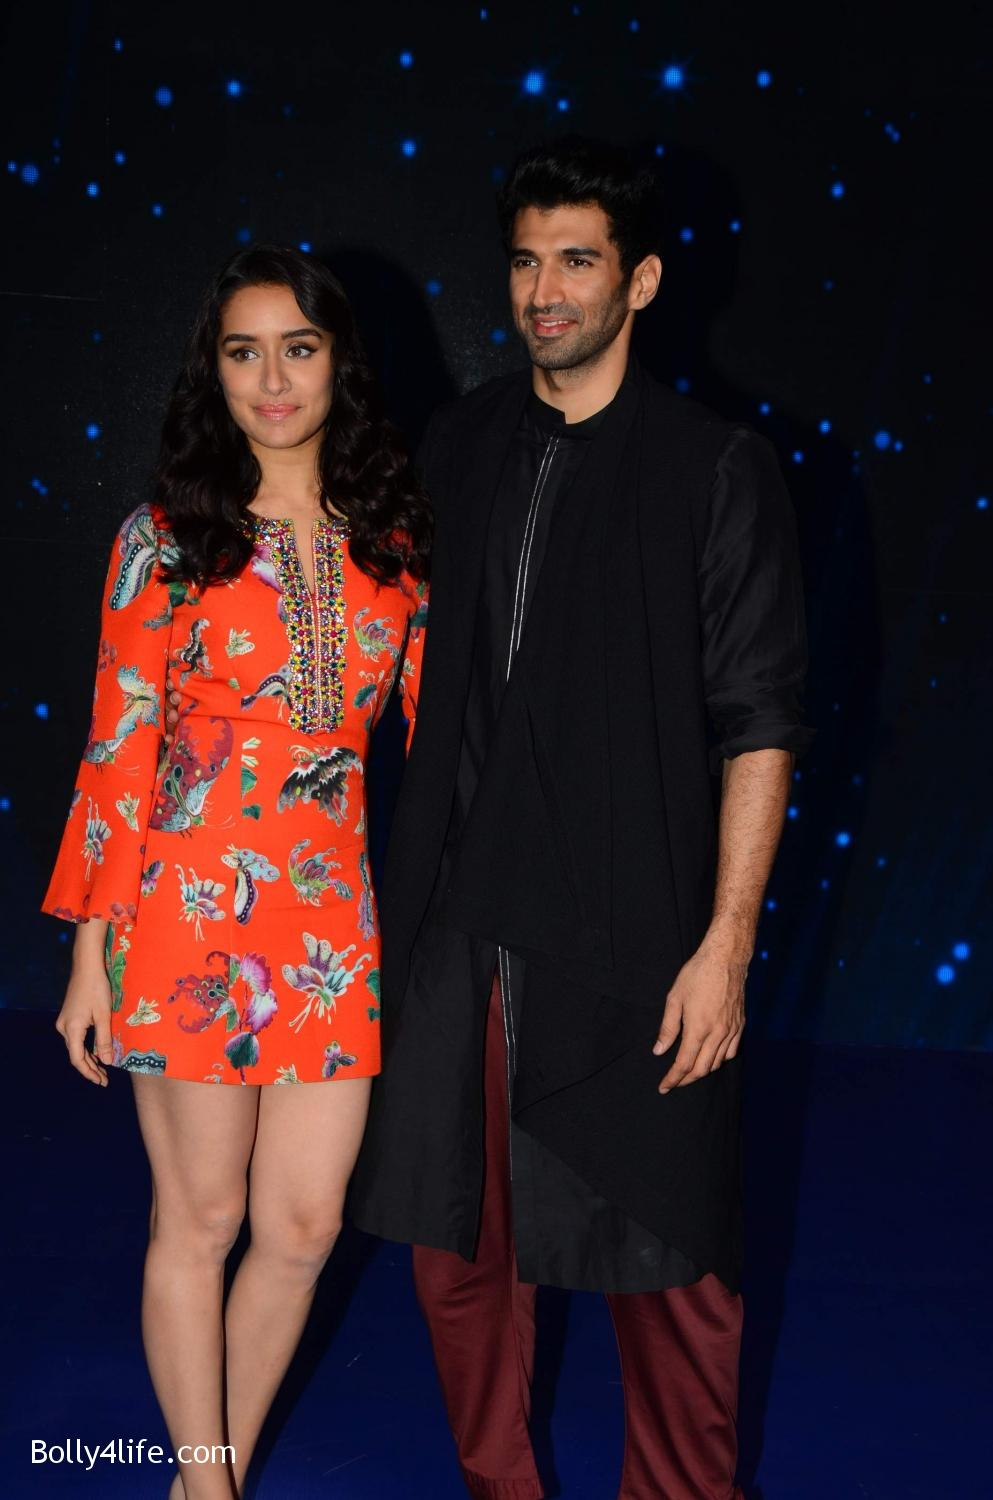 Shraddha-Kapoor-and-Aditya-Roy-Kapur-visit-on-the-set-of-Indian-Idol-Season-9-8.jpg